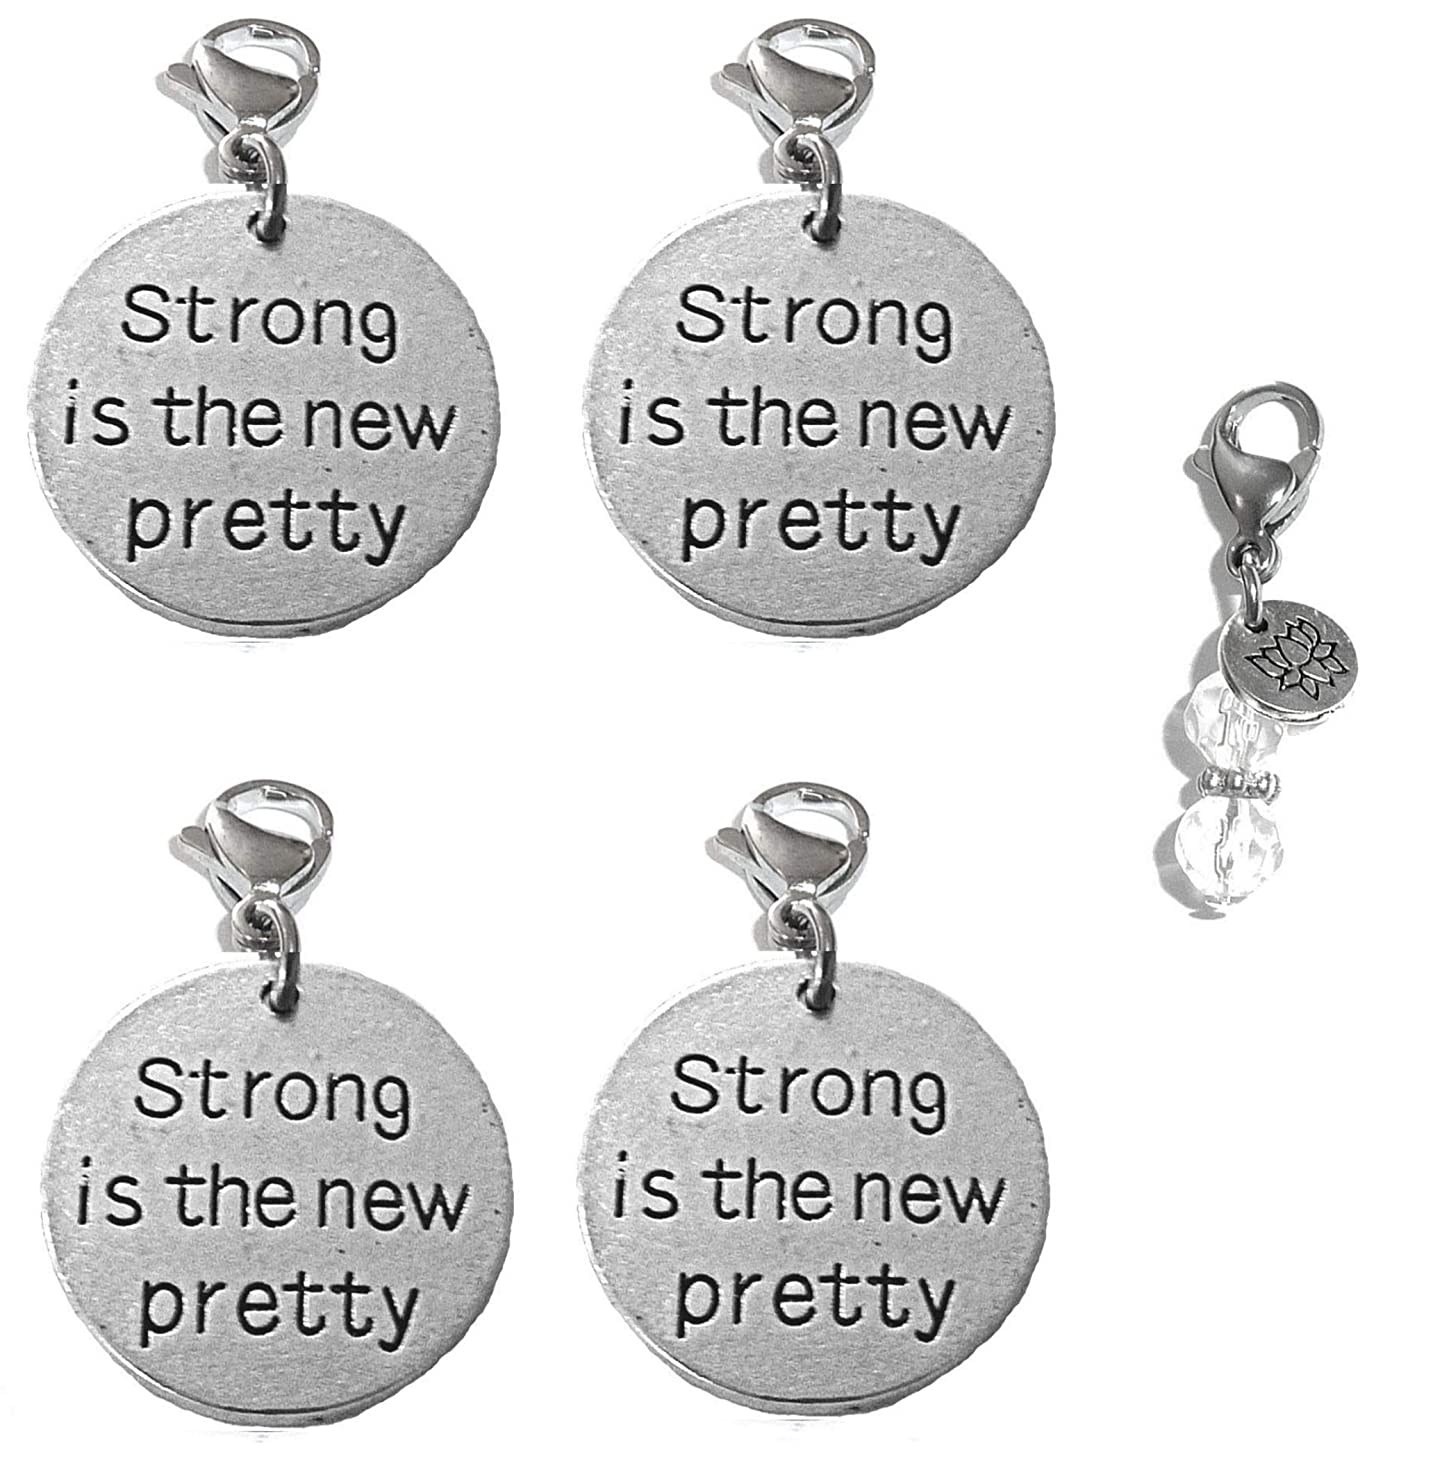 Hidden Hollow Beads Set of 4 Clip On Charms, Bag, Purse, Handbag, Message, Keychain, Zipper Pull, Bracelets, Necklaces, Jewelry